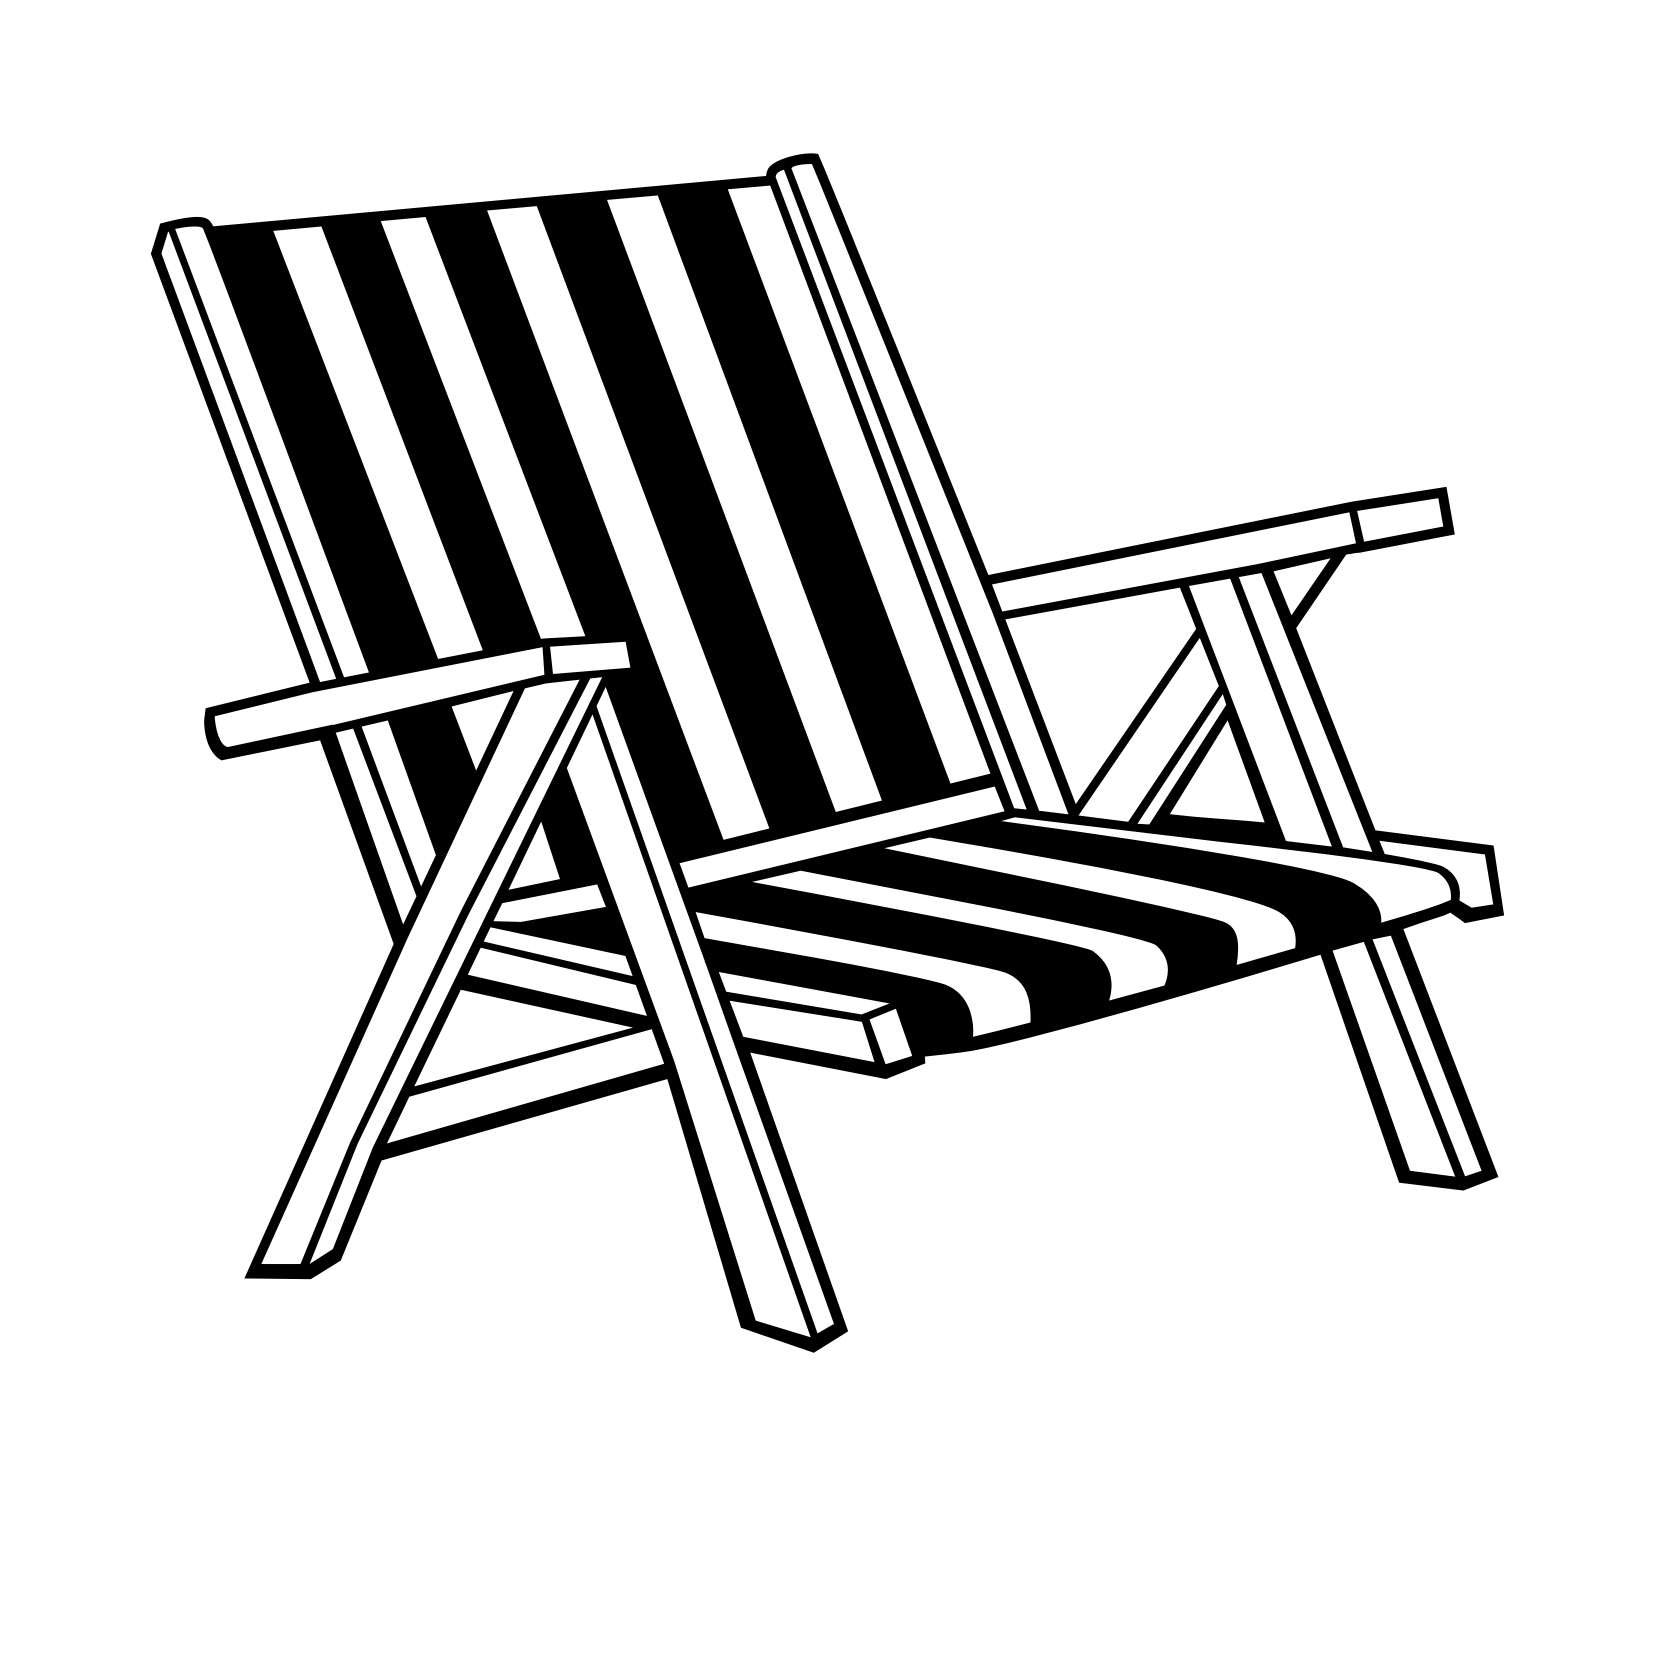 Adirondack Chairs Drawing At Getdrawings